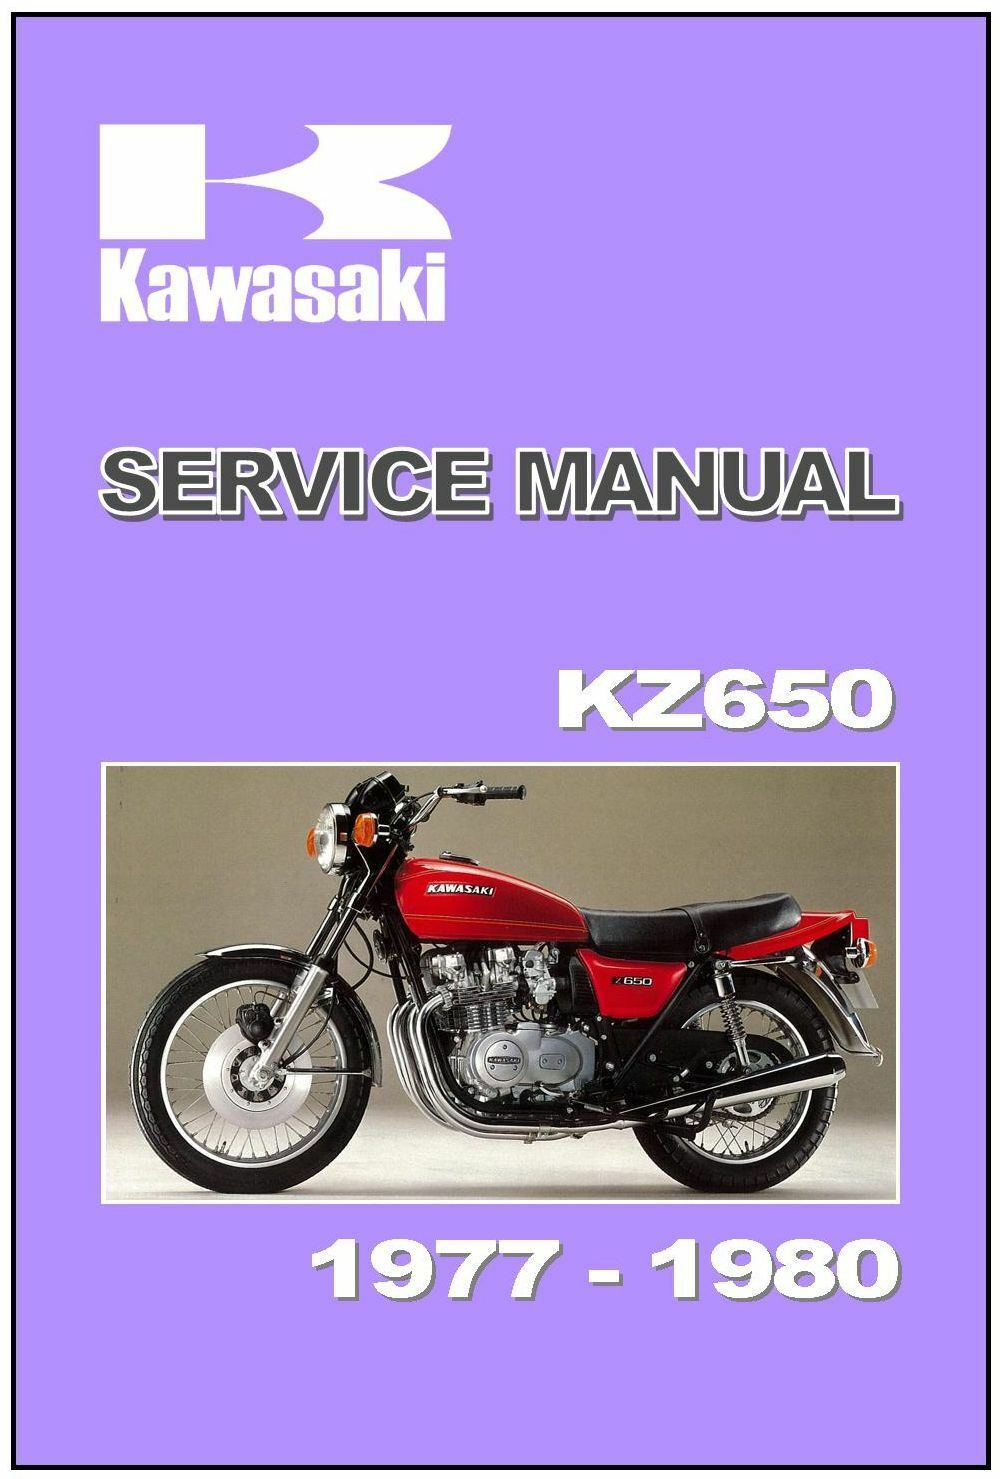 1979 Kz 650 Manual Kawasaki Vulcan 800 Carburetor Diagram Kz650b Im Too Busy Reproduction Of Original Out Print Also For Delkevic 4into Stainless Headers 76 77 Downpipes Welcome Zedrider Library